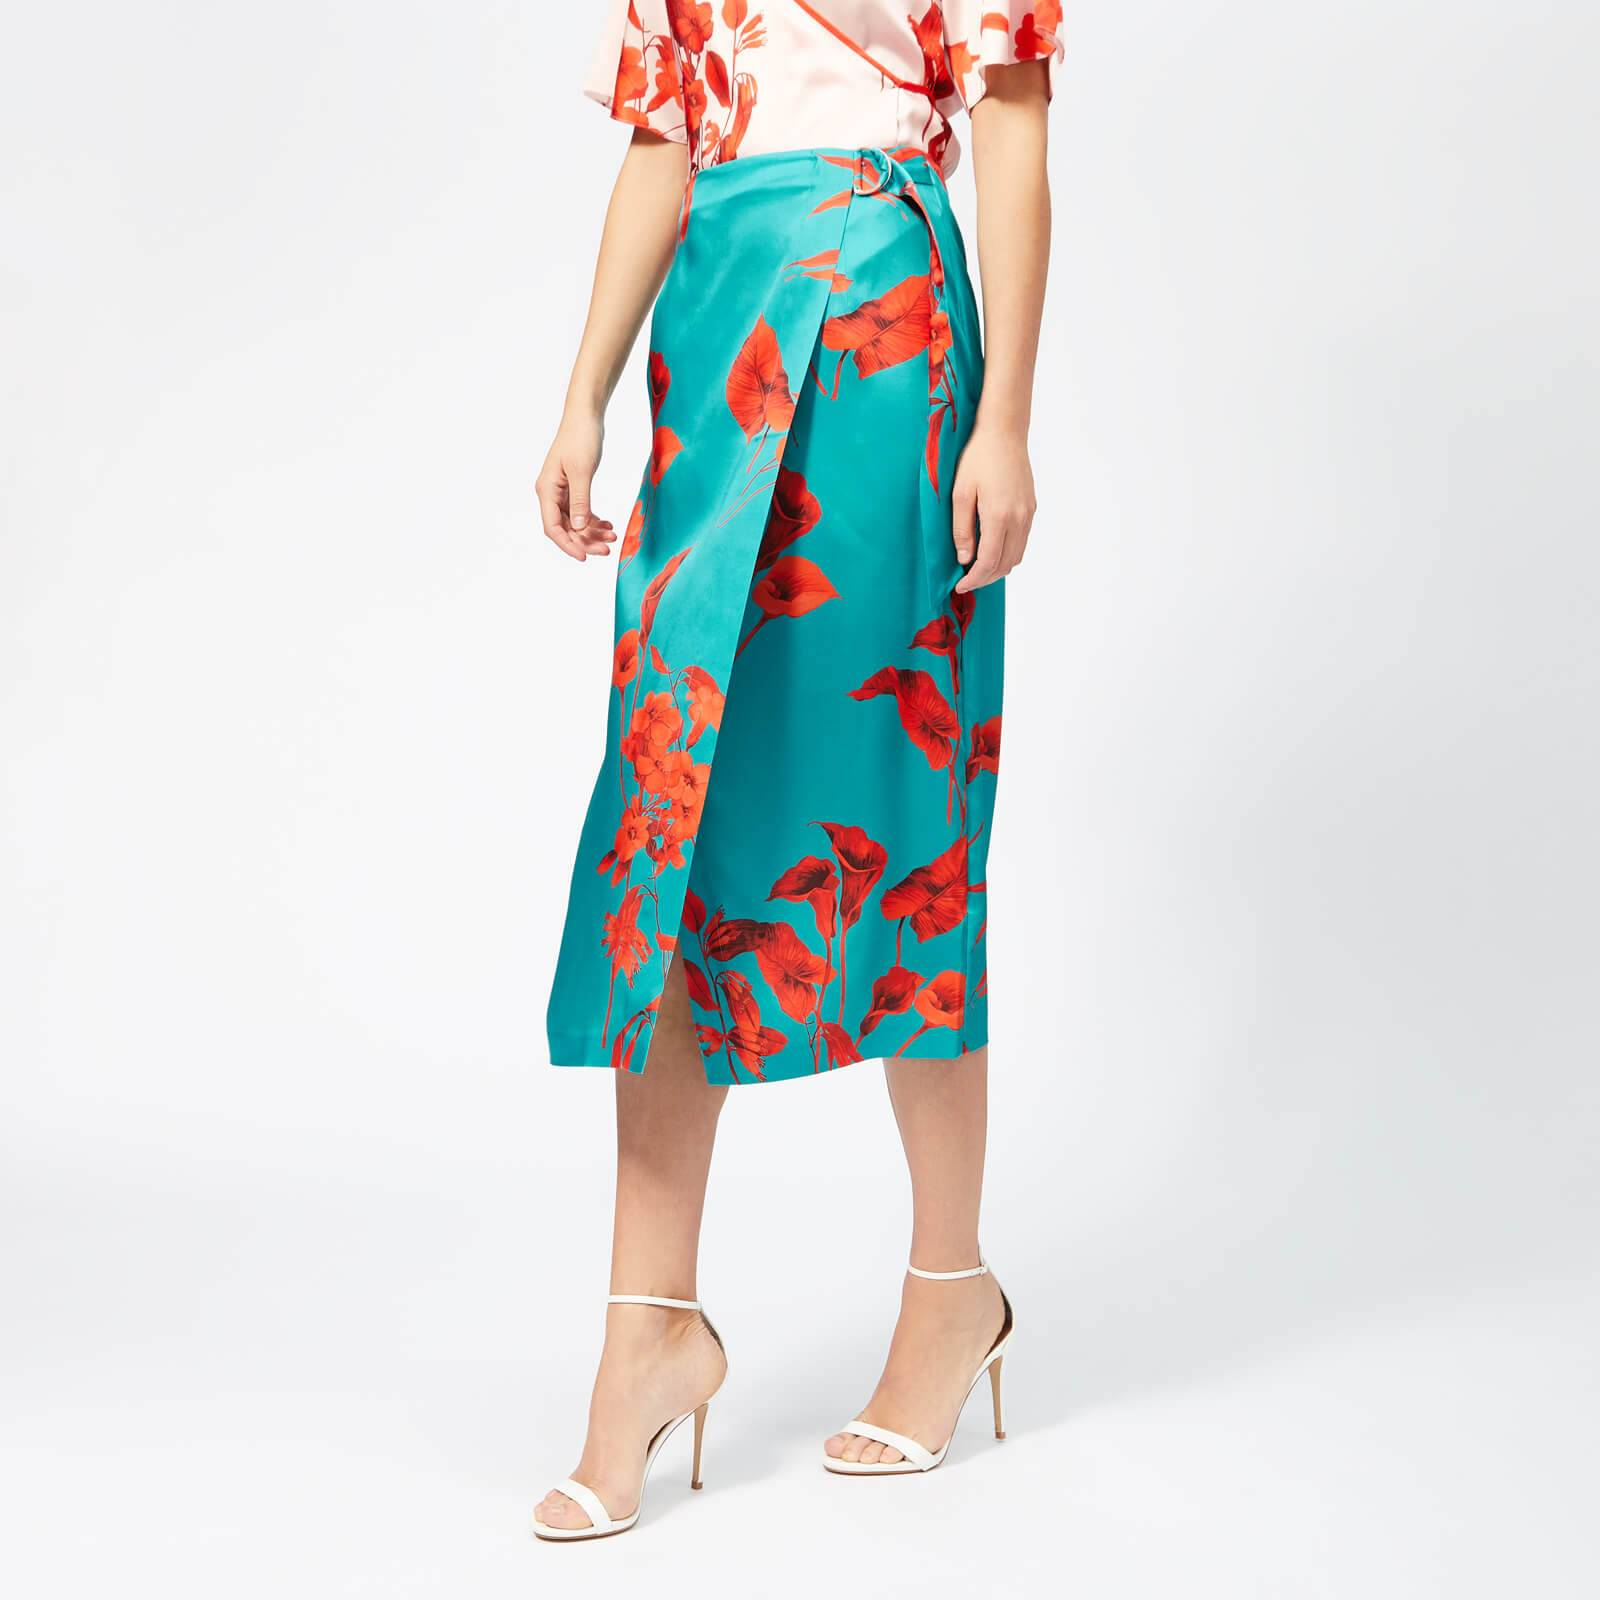 Ted Baker Women's Lilyyy Fantasia Split Hem Midi Skirt - Turquoise - 2/UK 10 - Blue